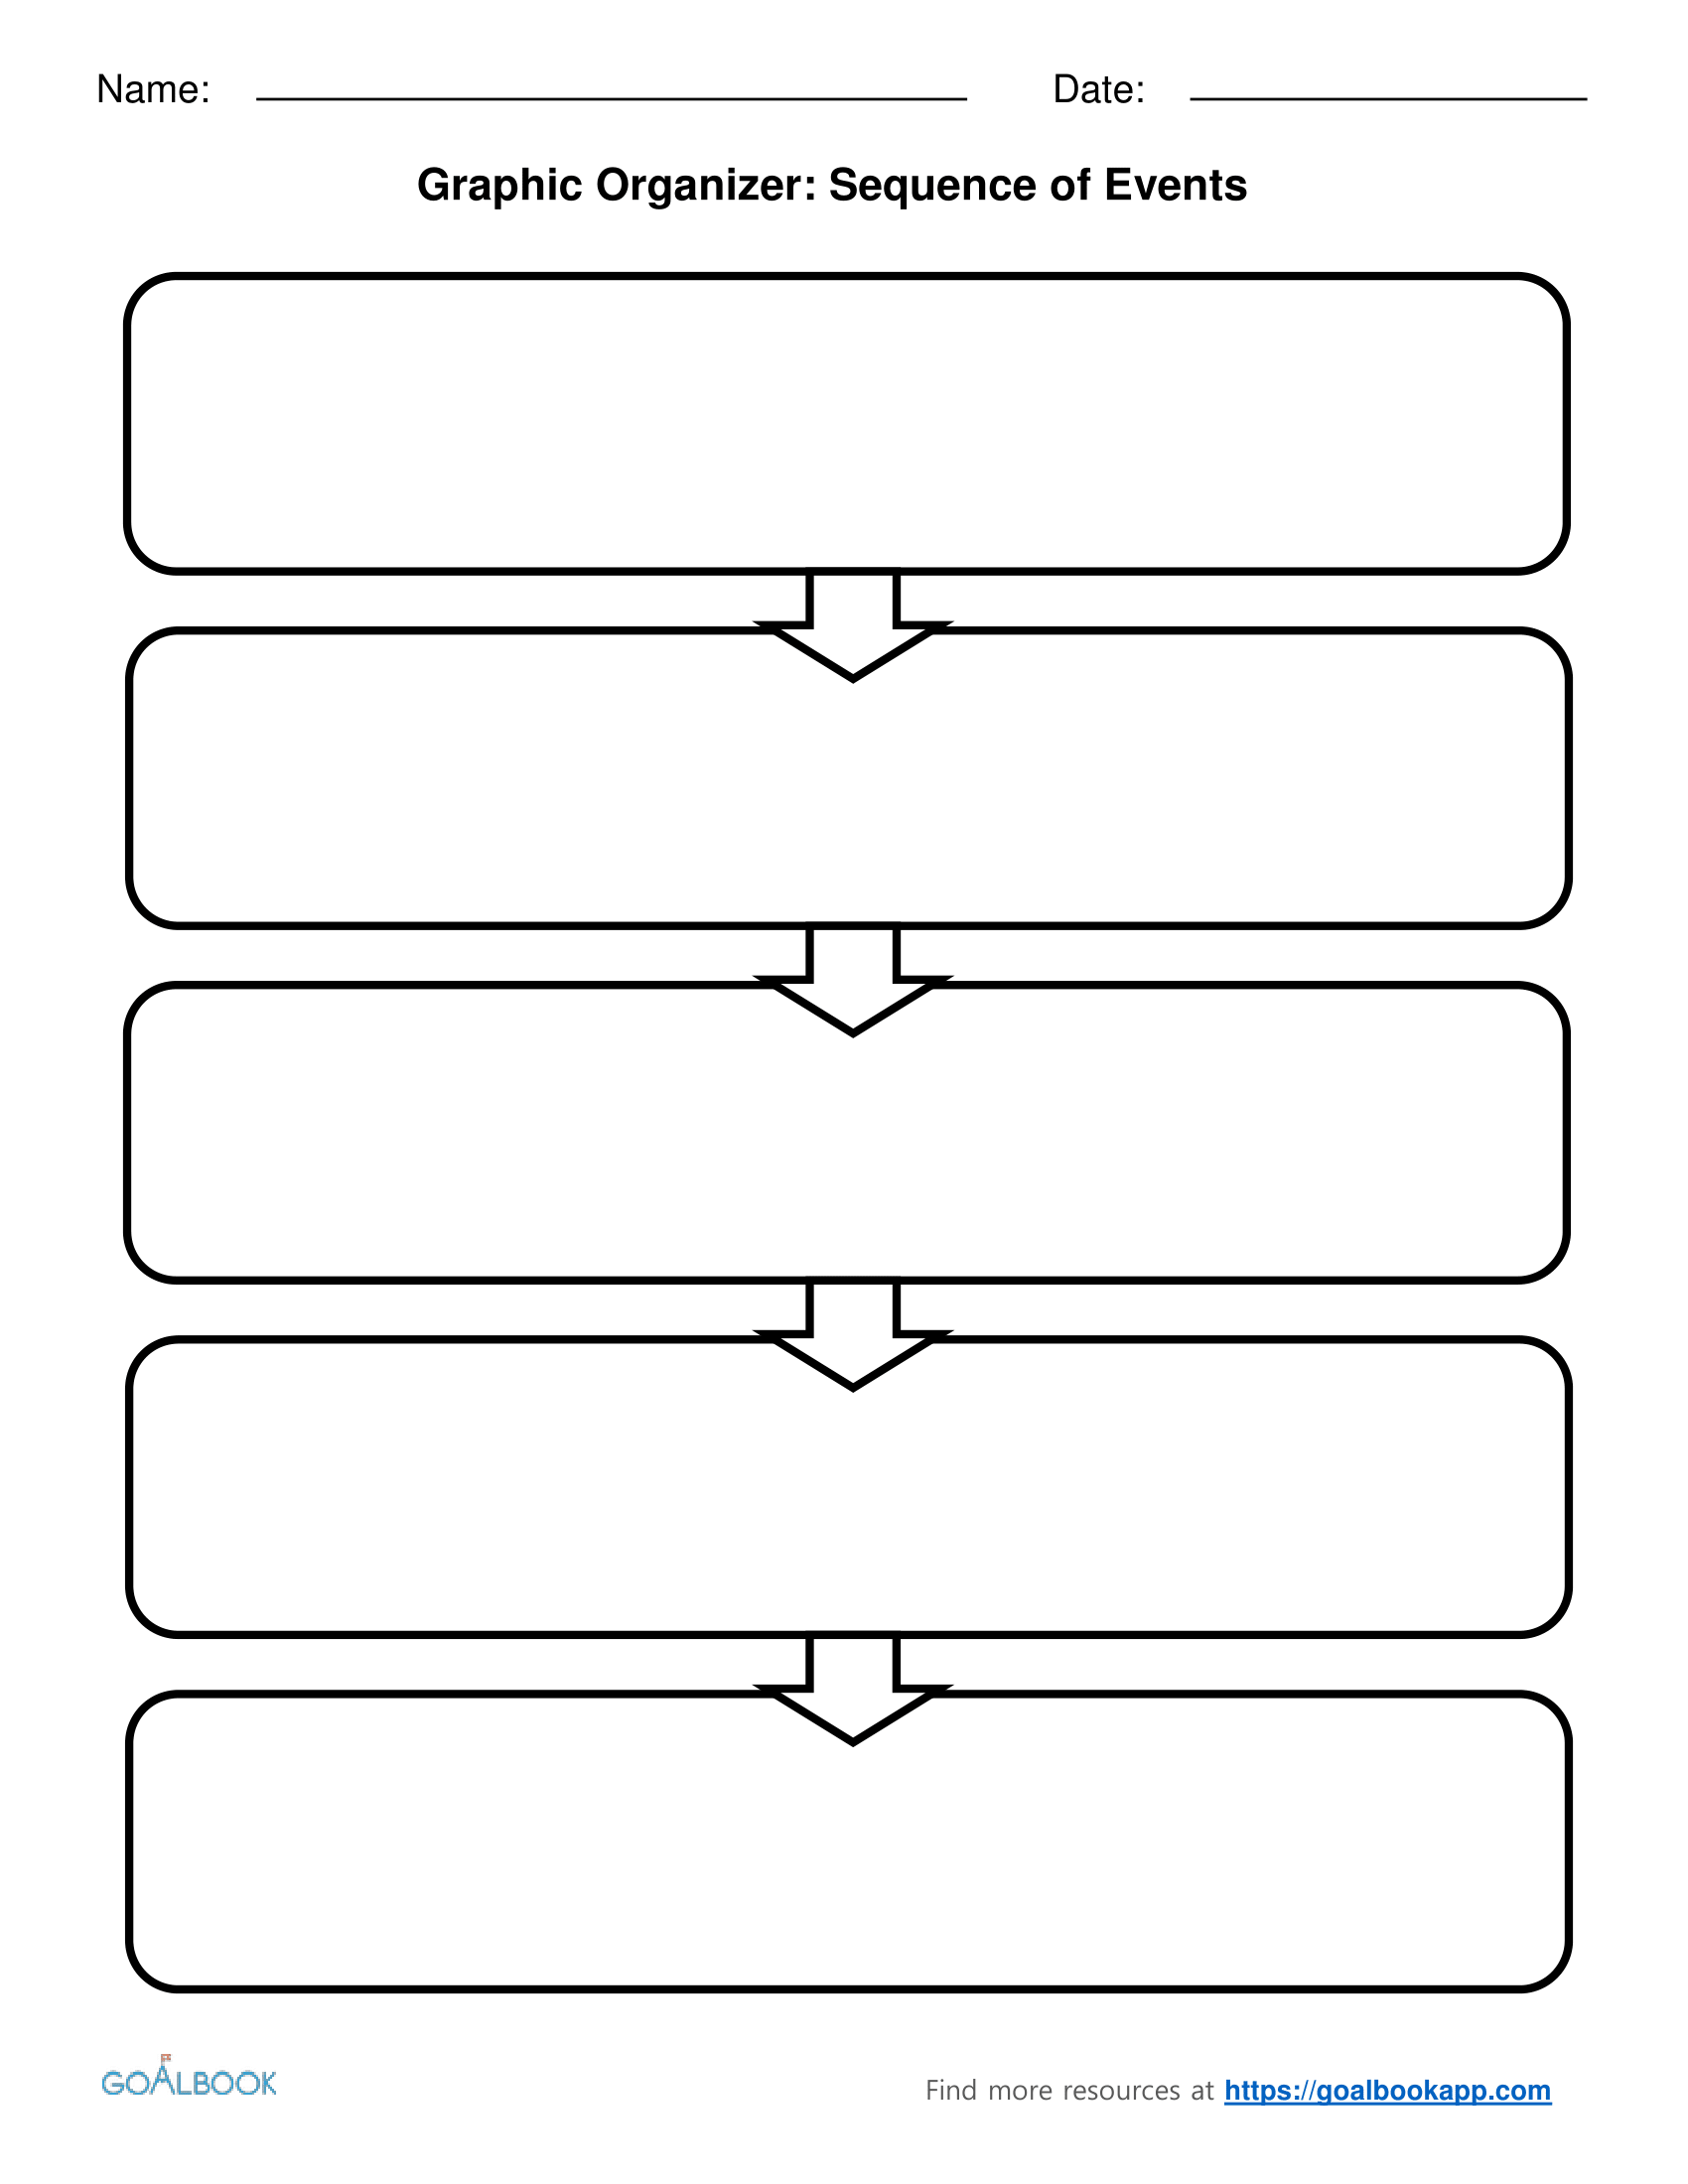 hight resolution of 05_Chain_of_Events_Sequence_Organizer_Blank-1.png (1700×2200)   Graphic  organizer template